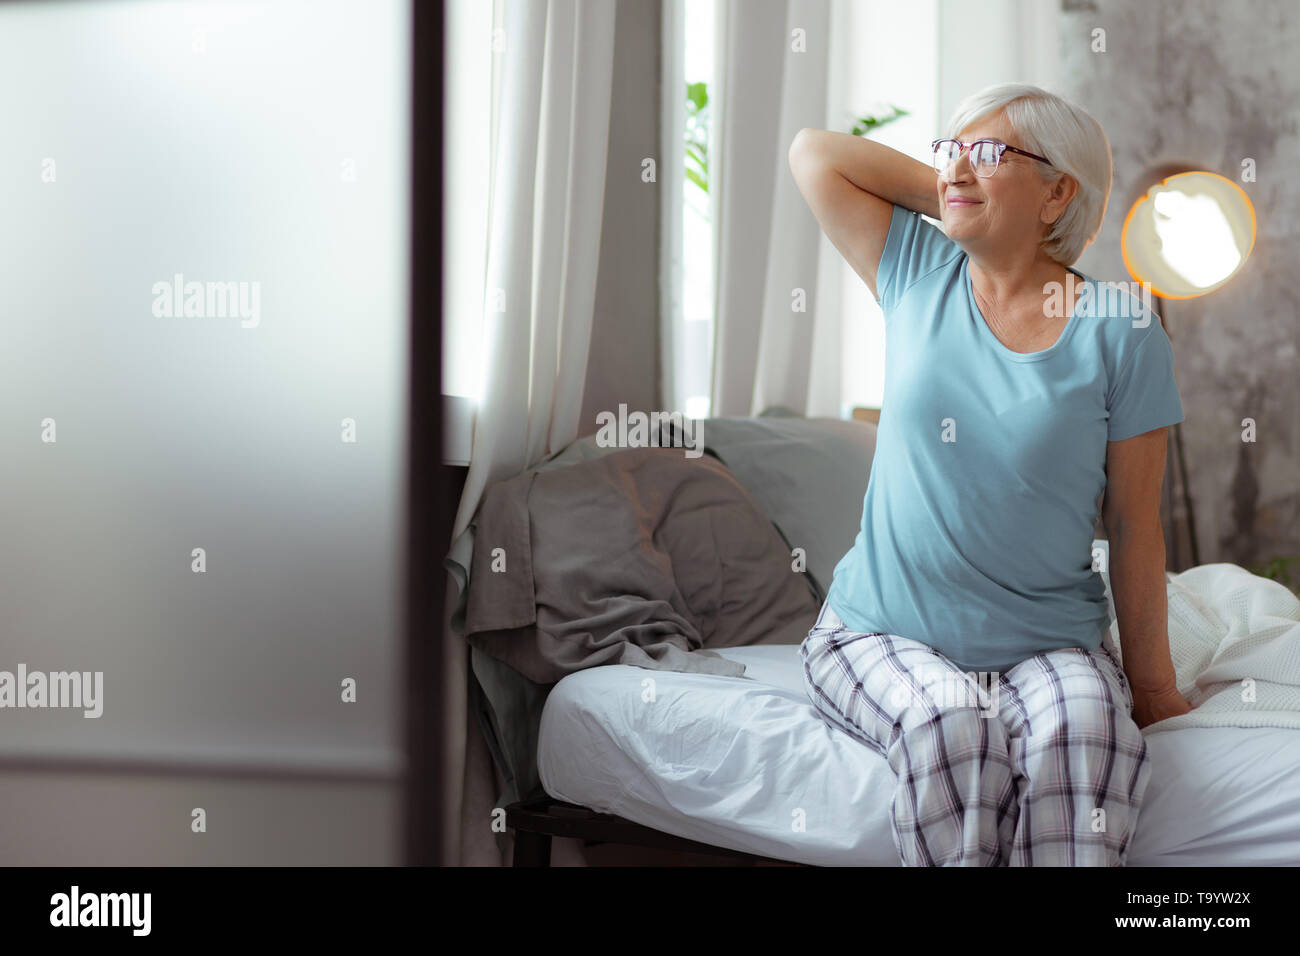 Nice-looking woman looking into the window while sitting on bed. - Stock Image